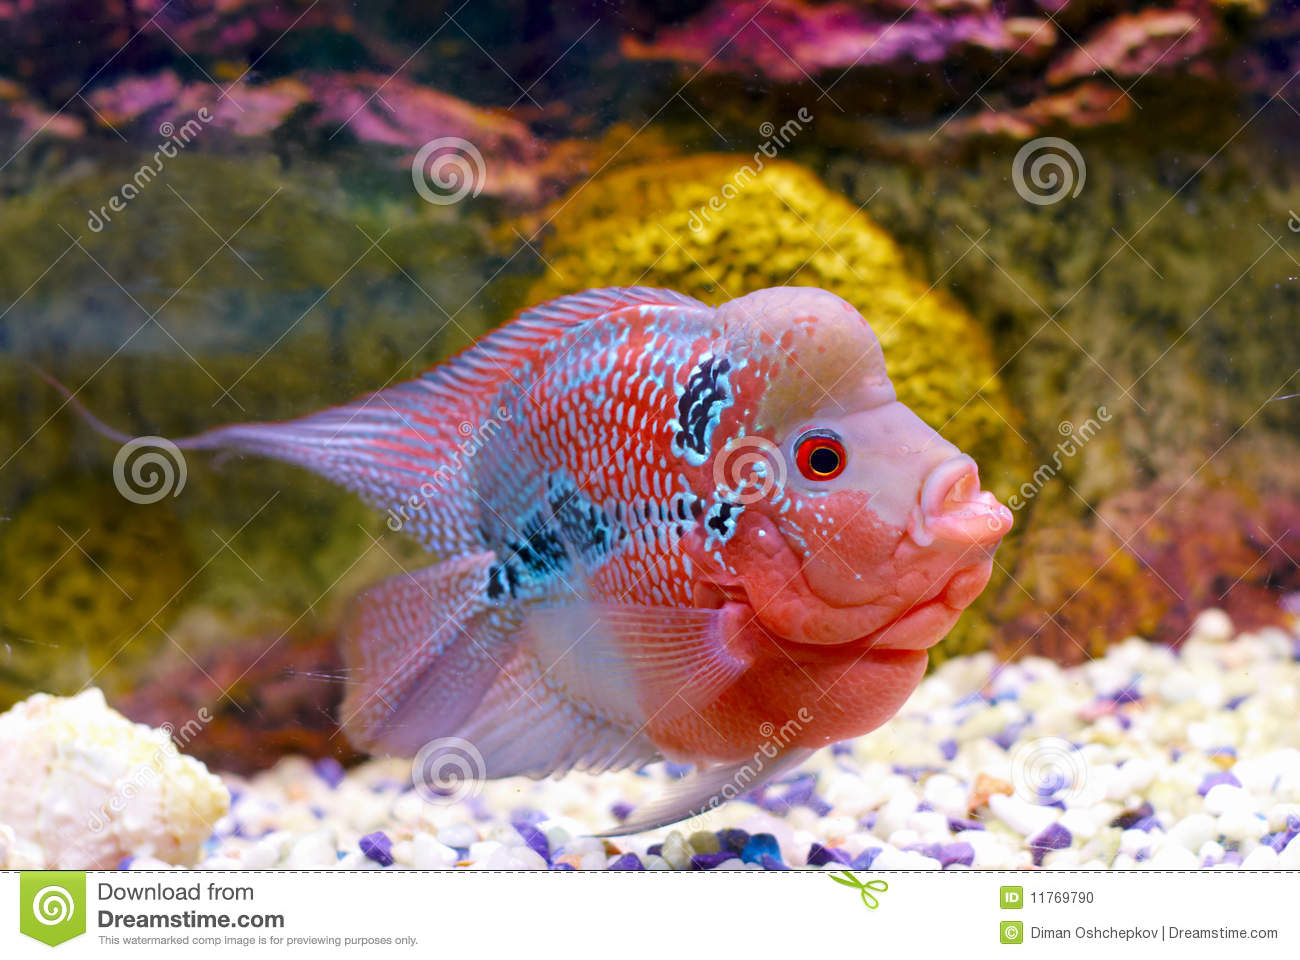 Flowerhorn Cichlid Fish Stock Photo - Image: 11769790